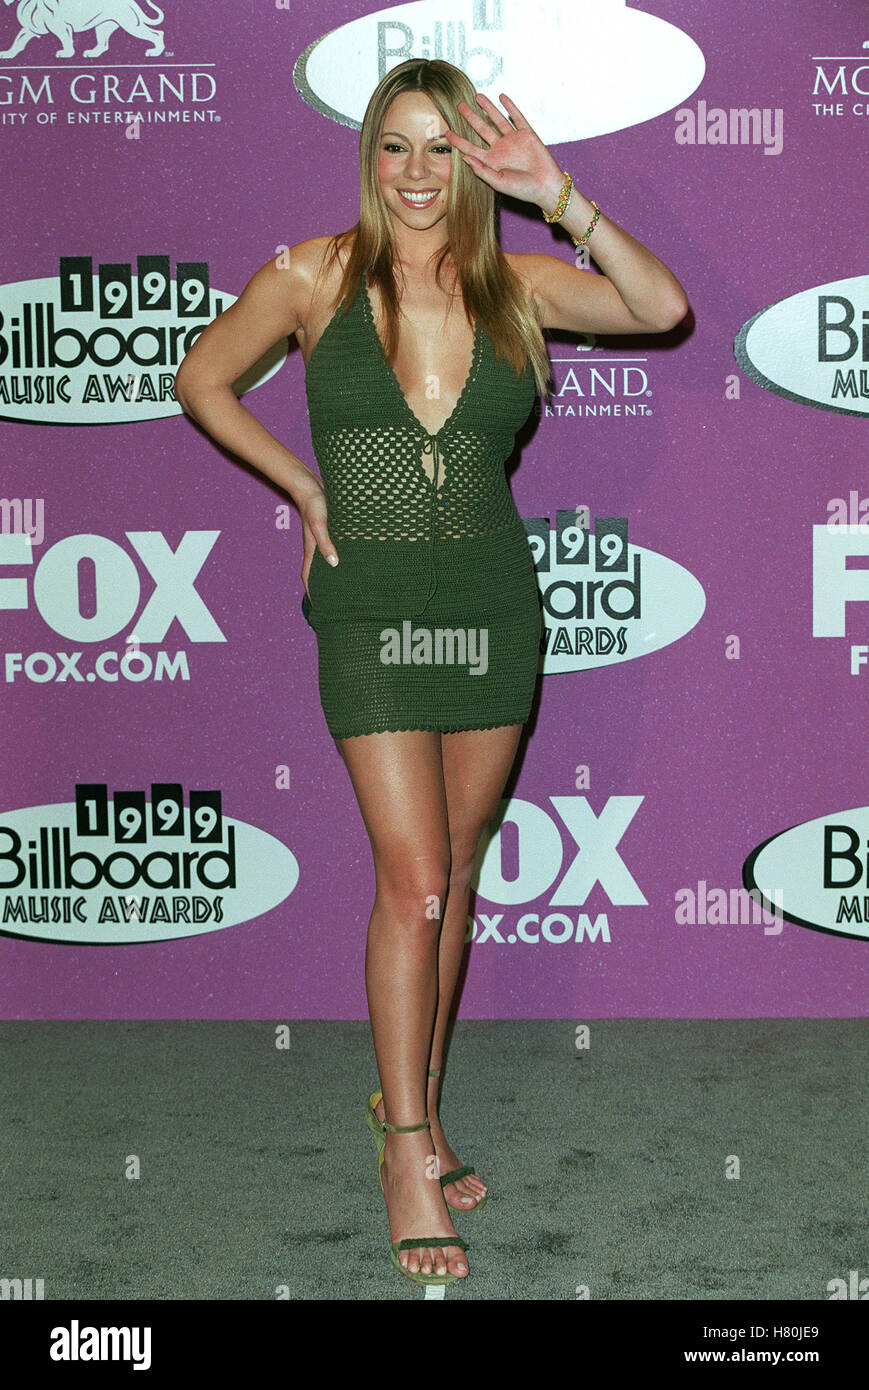 MARIAH CAREY LAS VEGAS USA 13 December 1999 Stock Photo: 125404337 ...